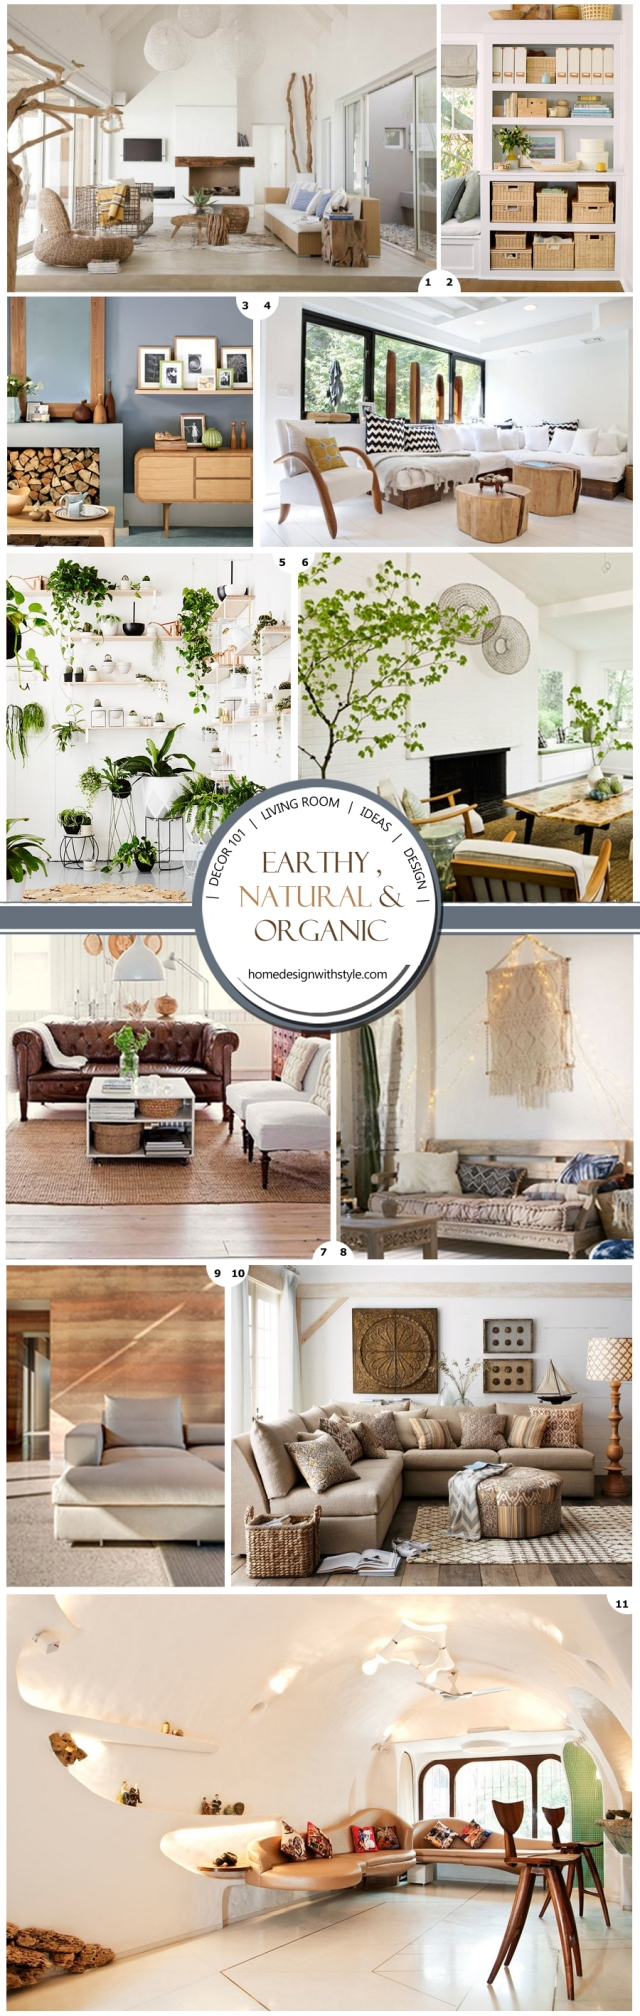 Decor 101 Earthy Natural Organic Living Room Design Your